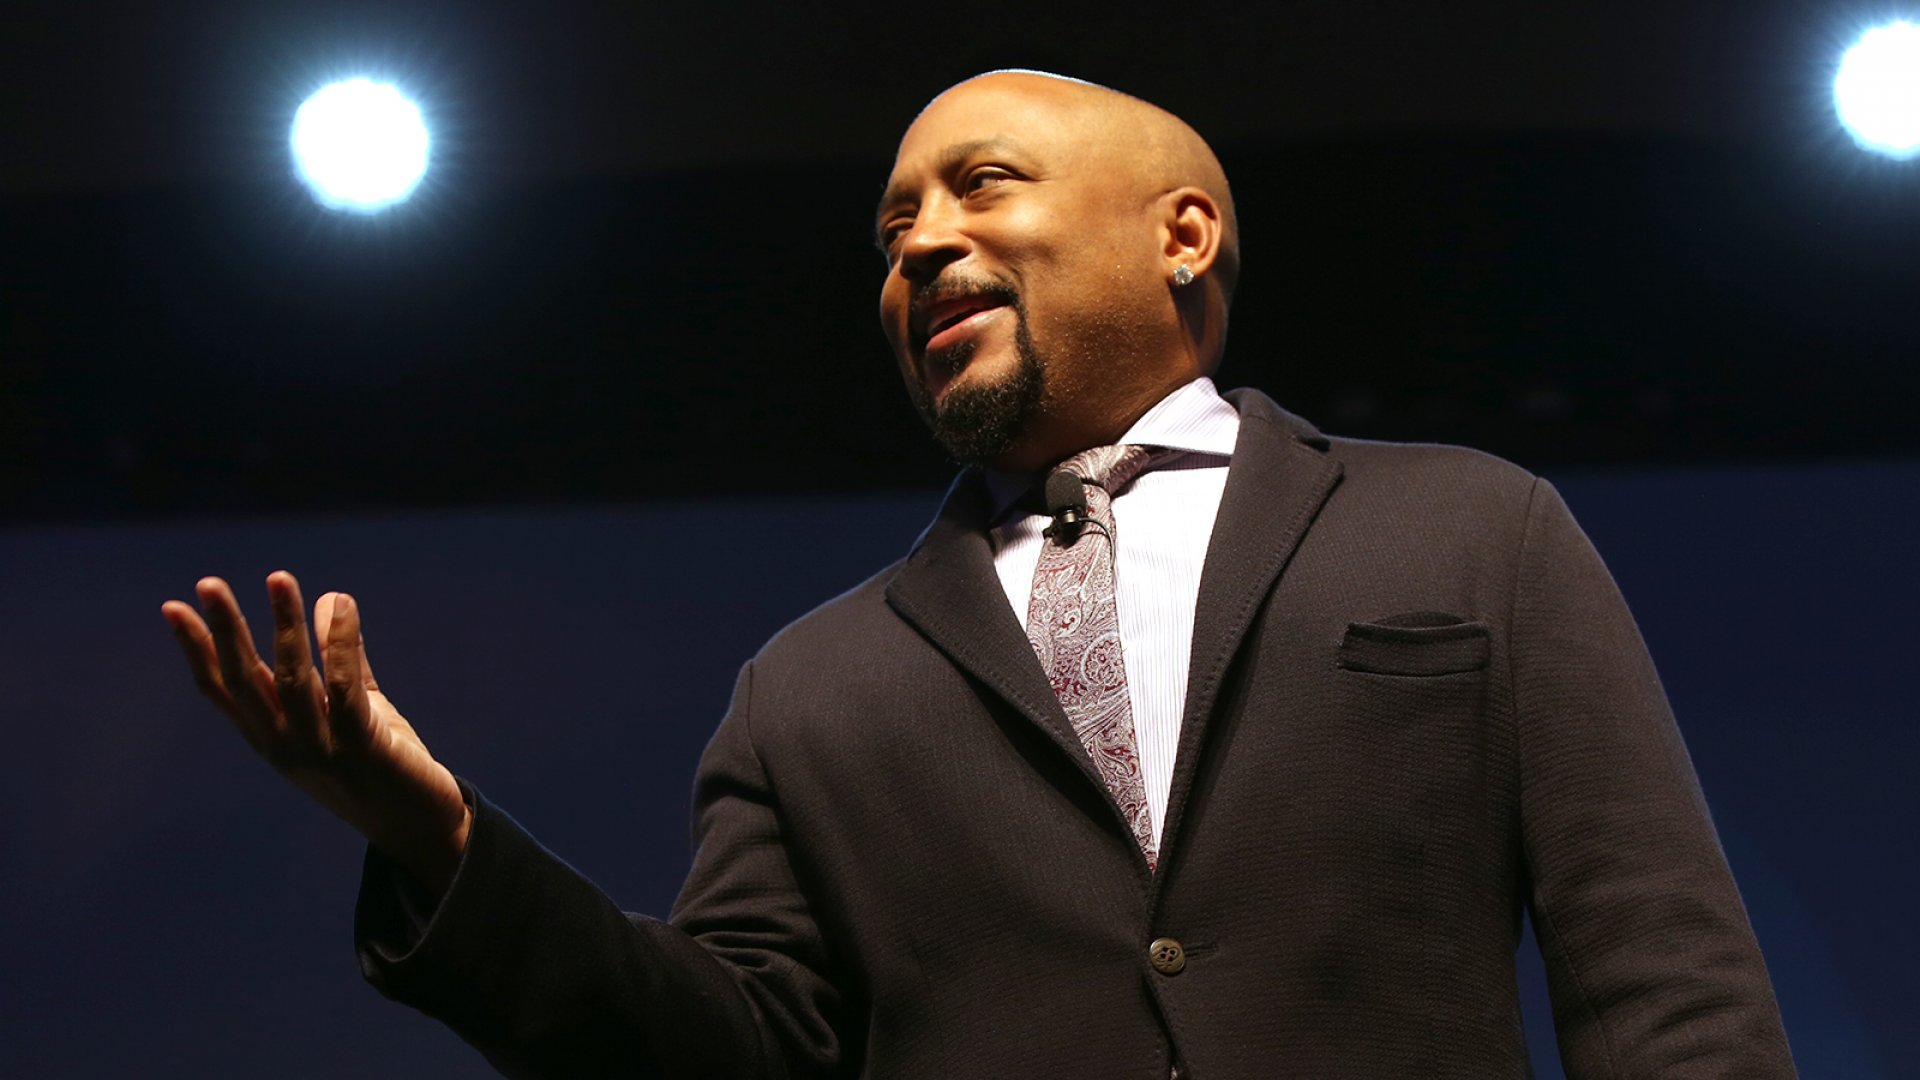 Daymond John at GrowCo: Don't Confuse Money With Success